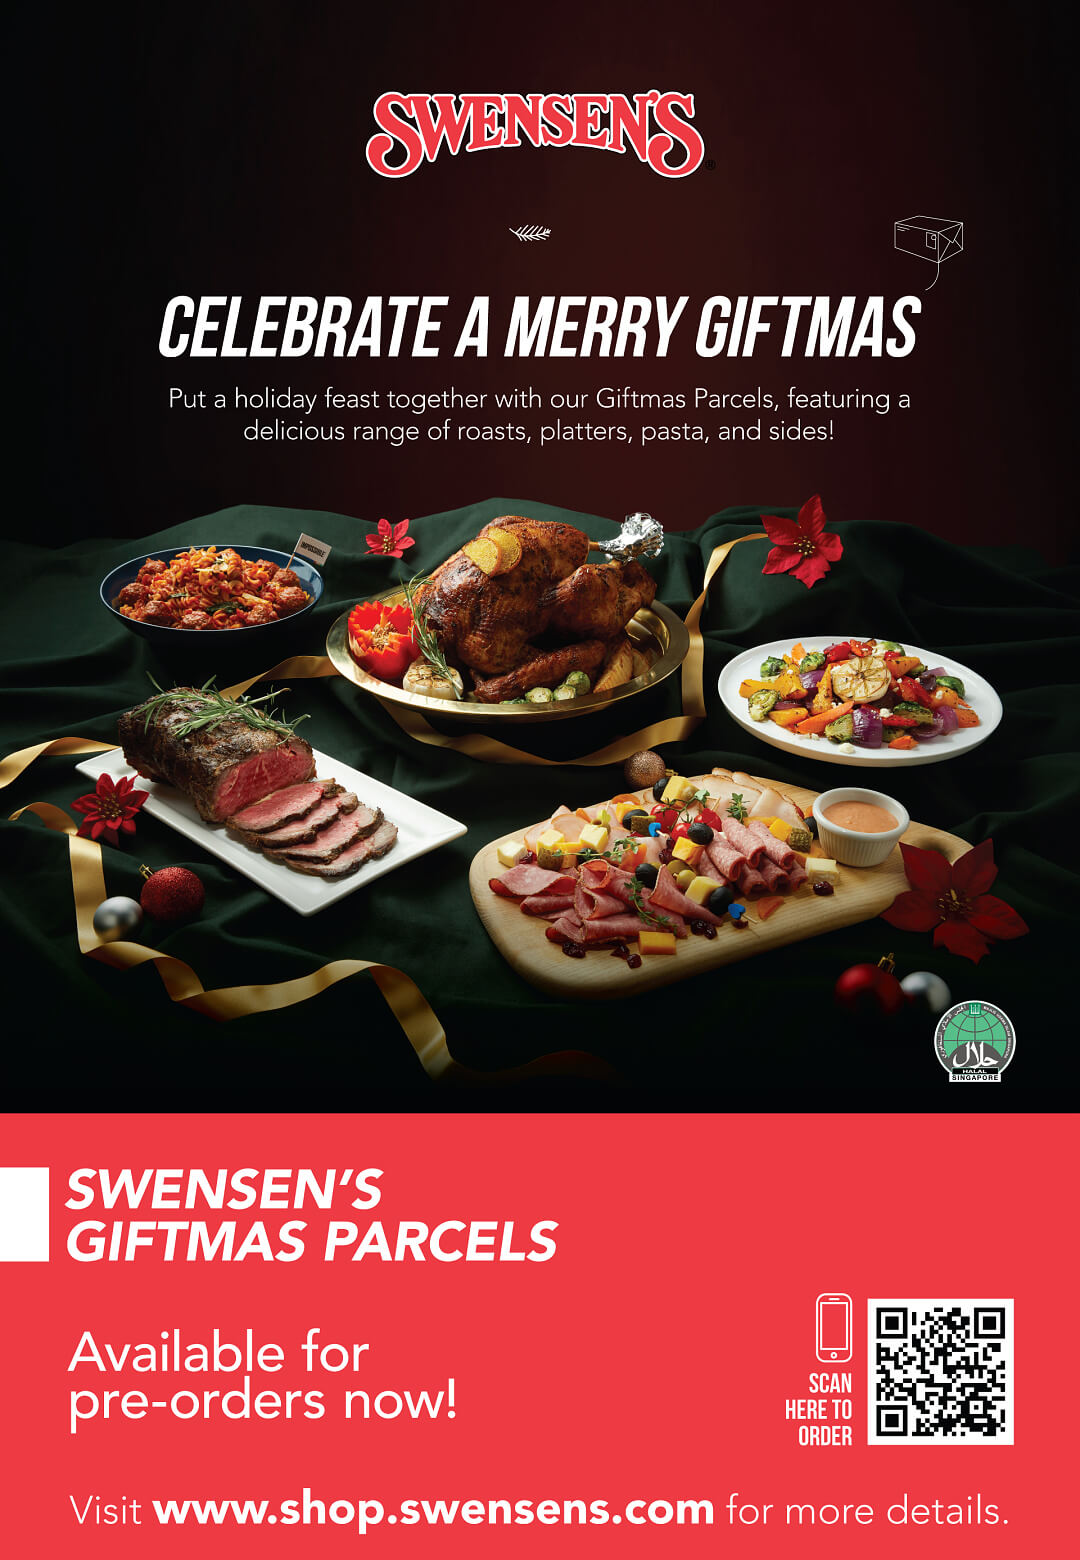 Swensen's Christmas Catalogue and Giftmas Parcels 2020